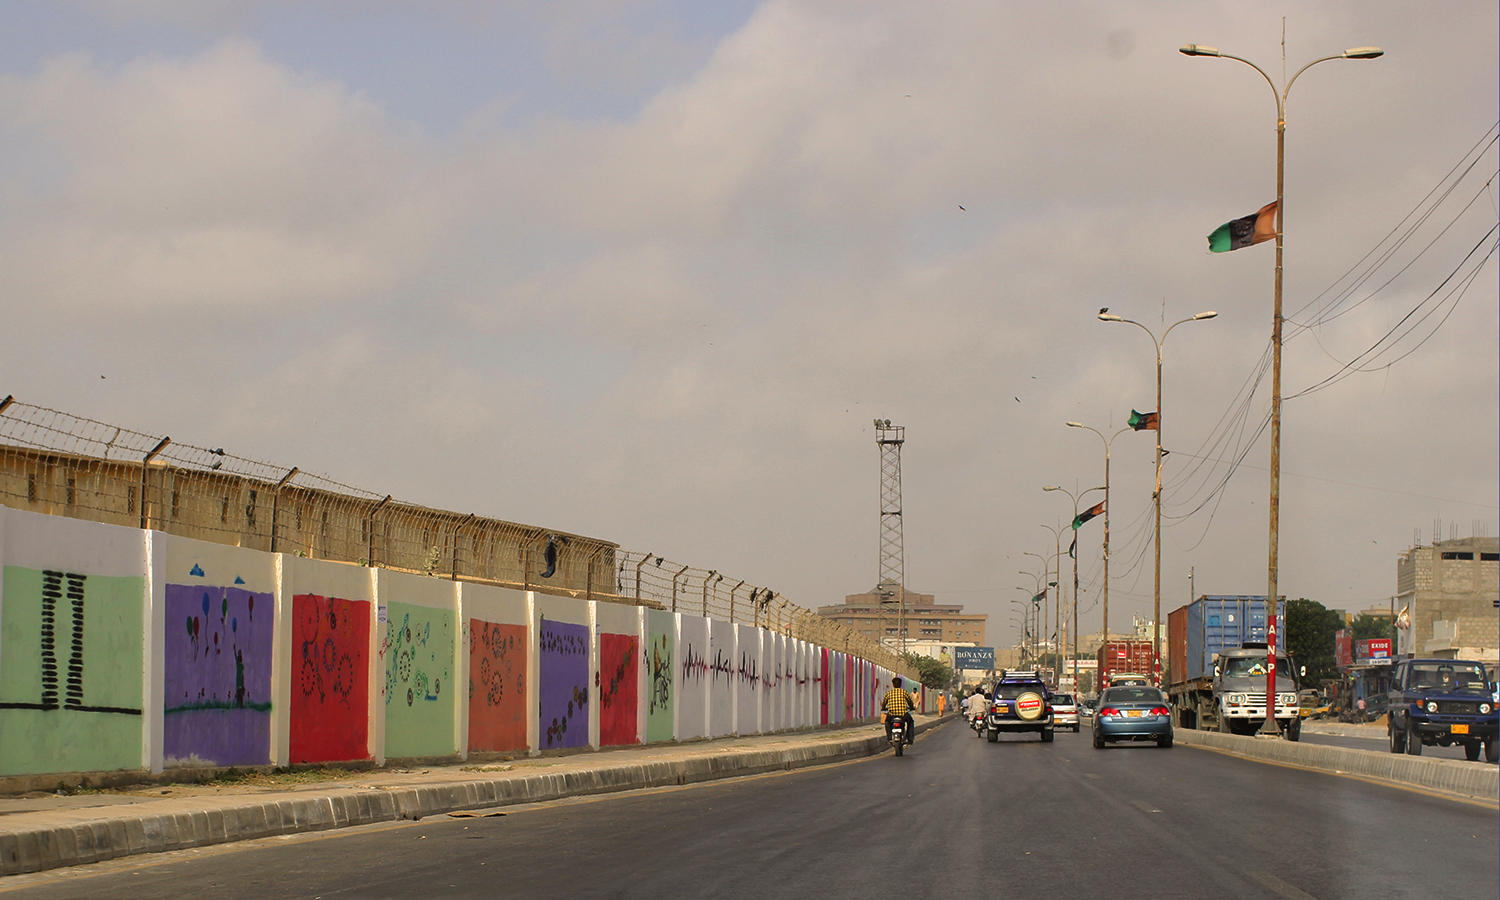 5562cfe9a2081?r745140421 - When hate on the wall disappears in Karachi